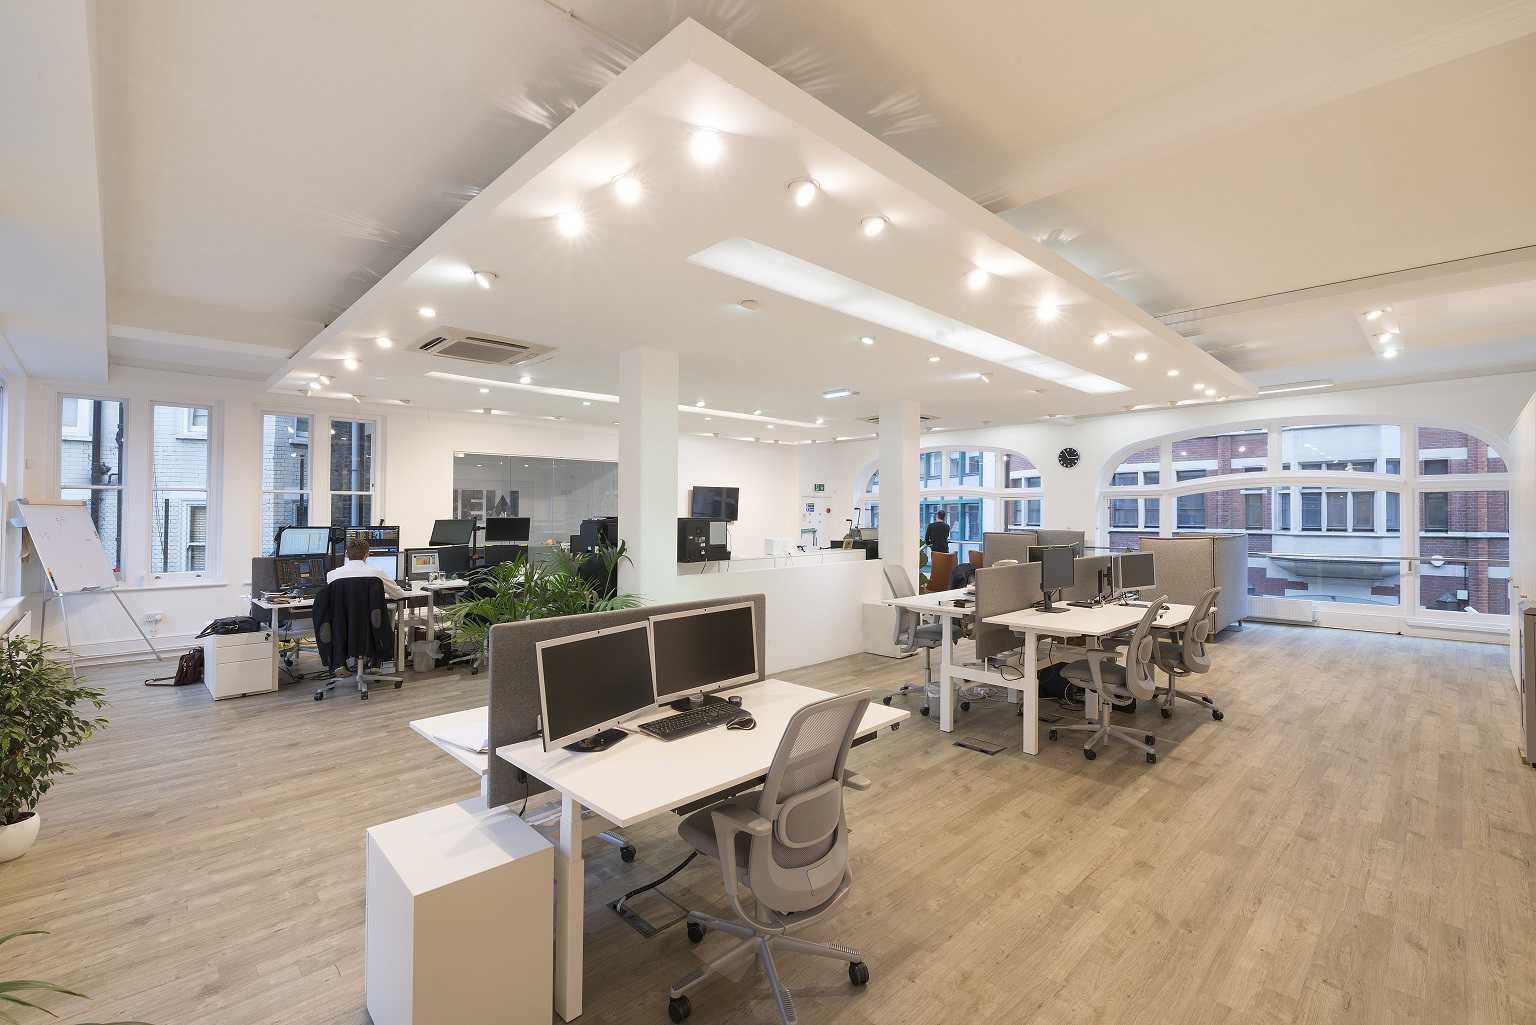 FIRST FLOOR, 40-44 NEWMAN STREET, LONDON W1 – INSTRUCTED, MARKETED AND LET – WITHIN 2 MONTHS!